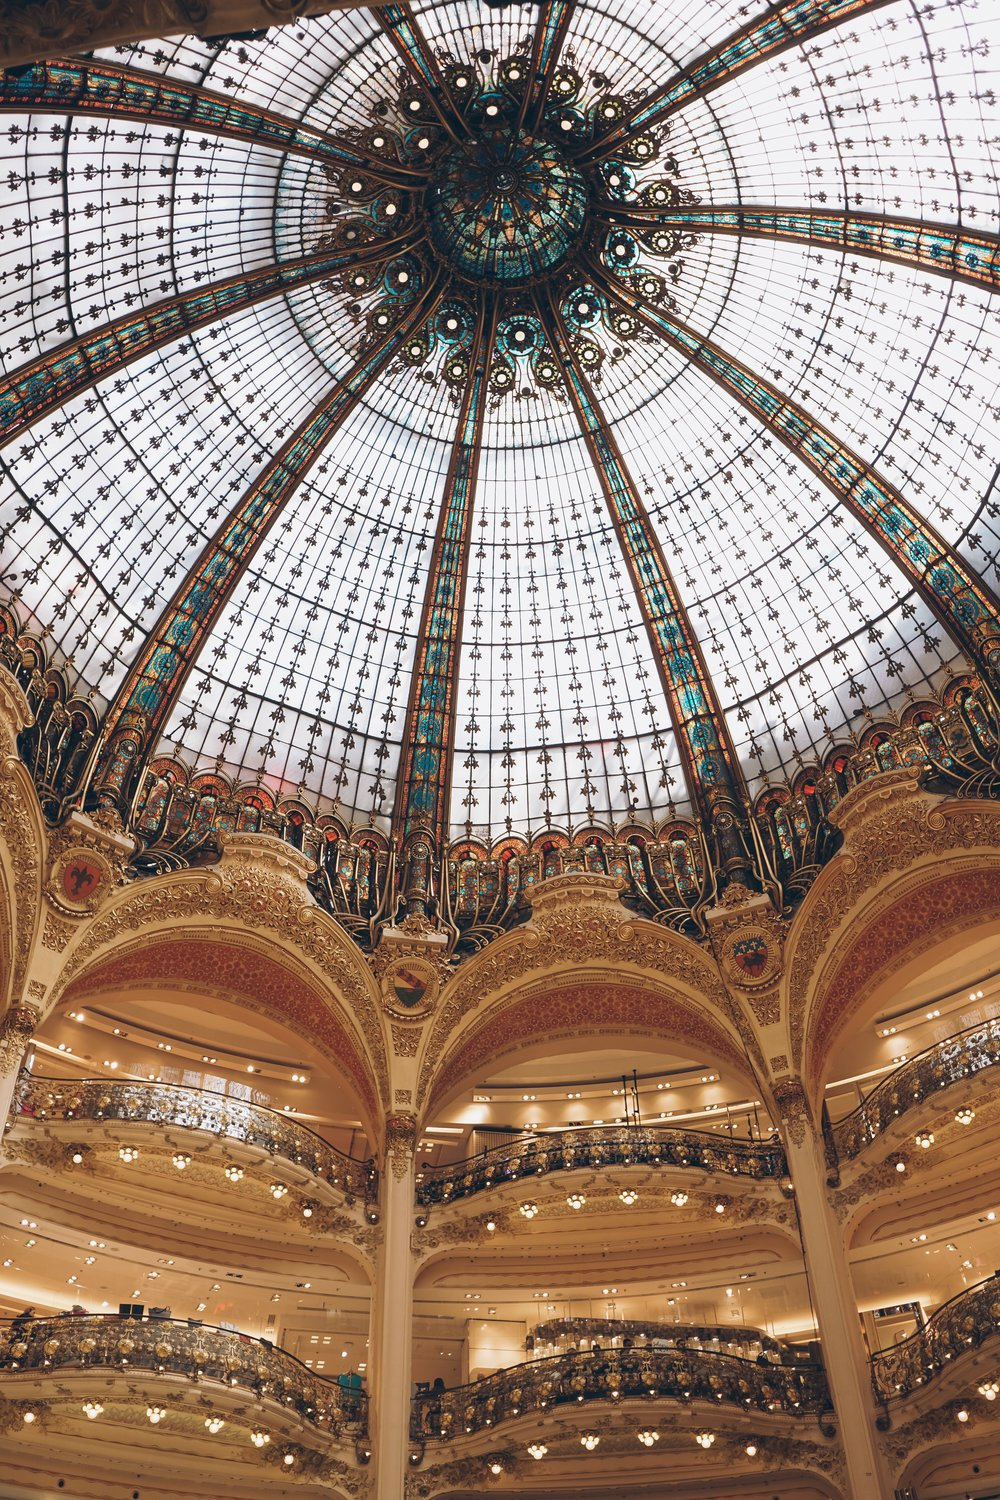 Julia friedman paris for the weekend sony alpha Galeries Lafayette